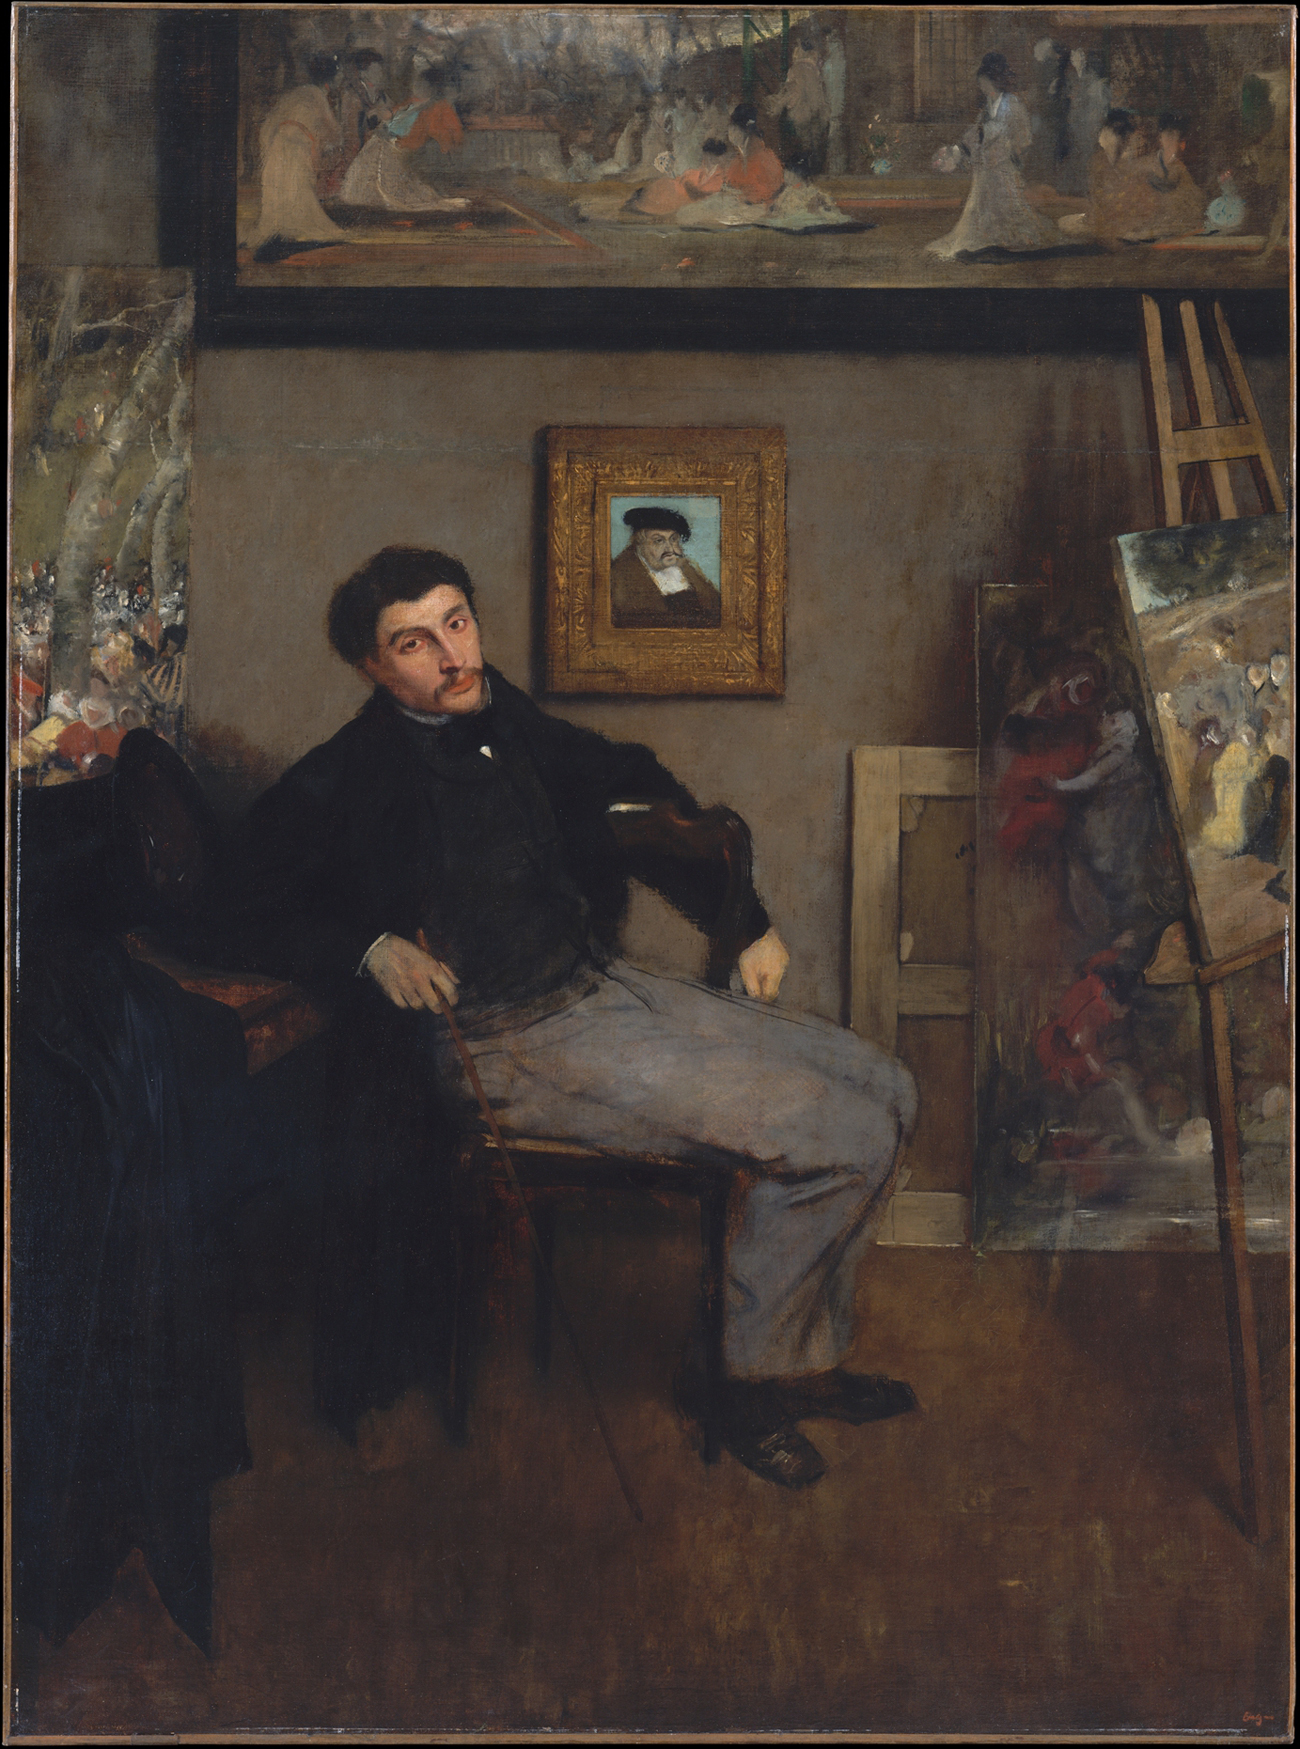 James-Jacques-Joseph Tissot / Degas